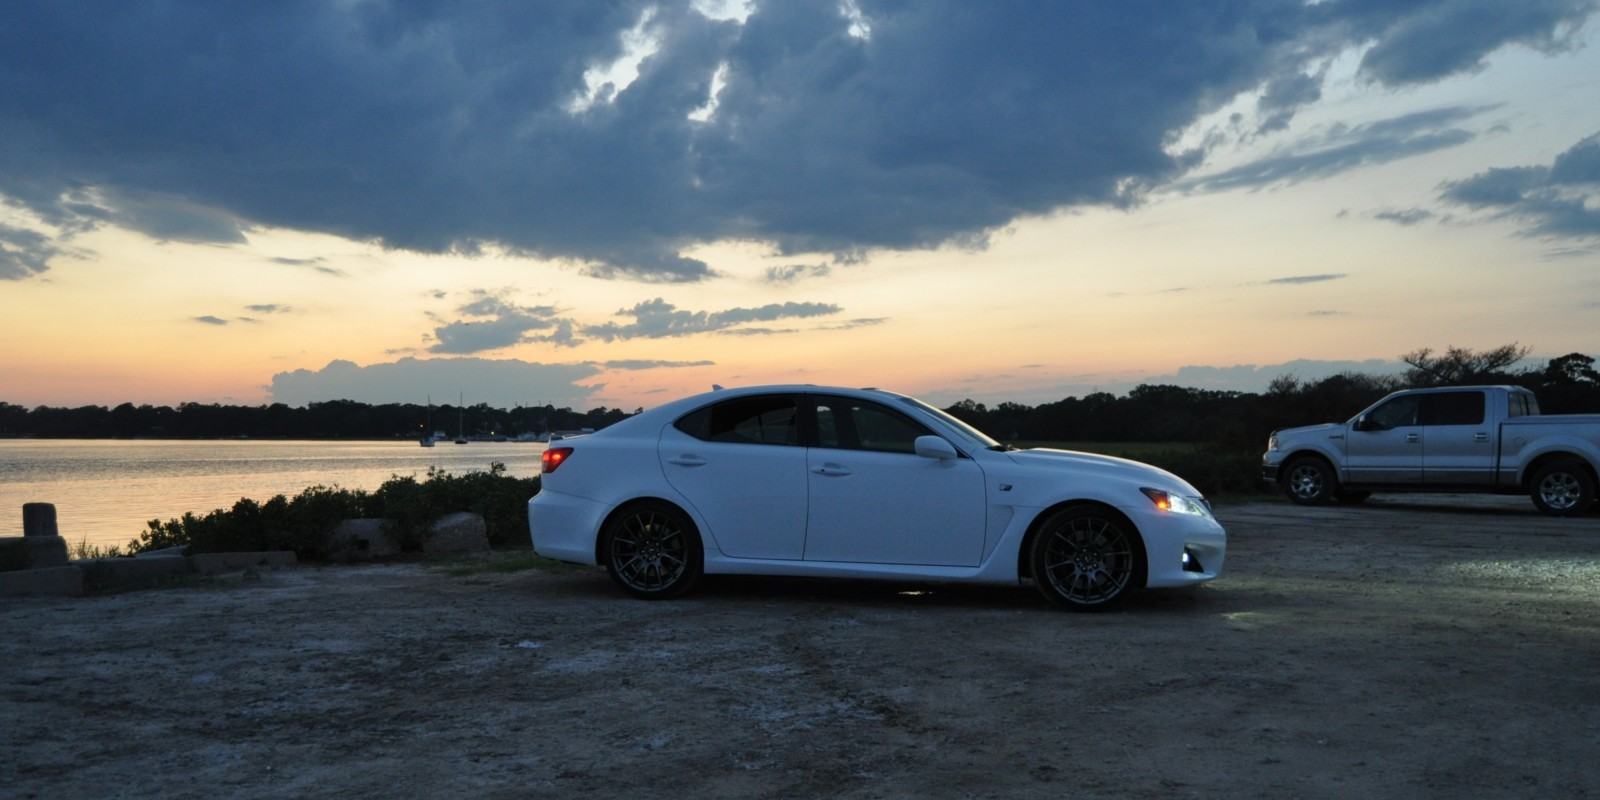 2014 Lexus IS-F Looking Sublime in Sunset Photo Shoot 7